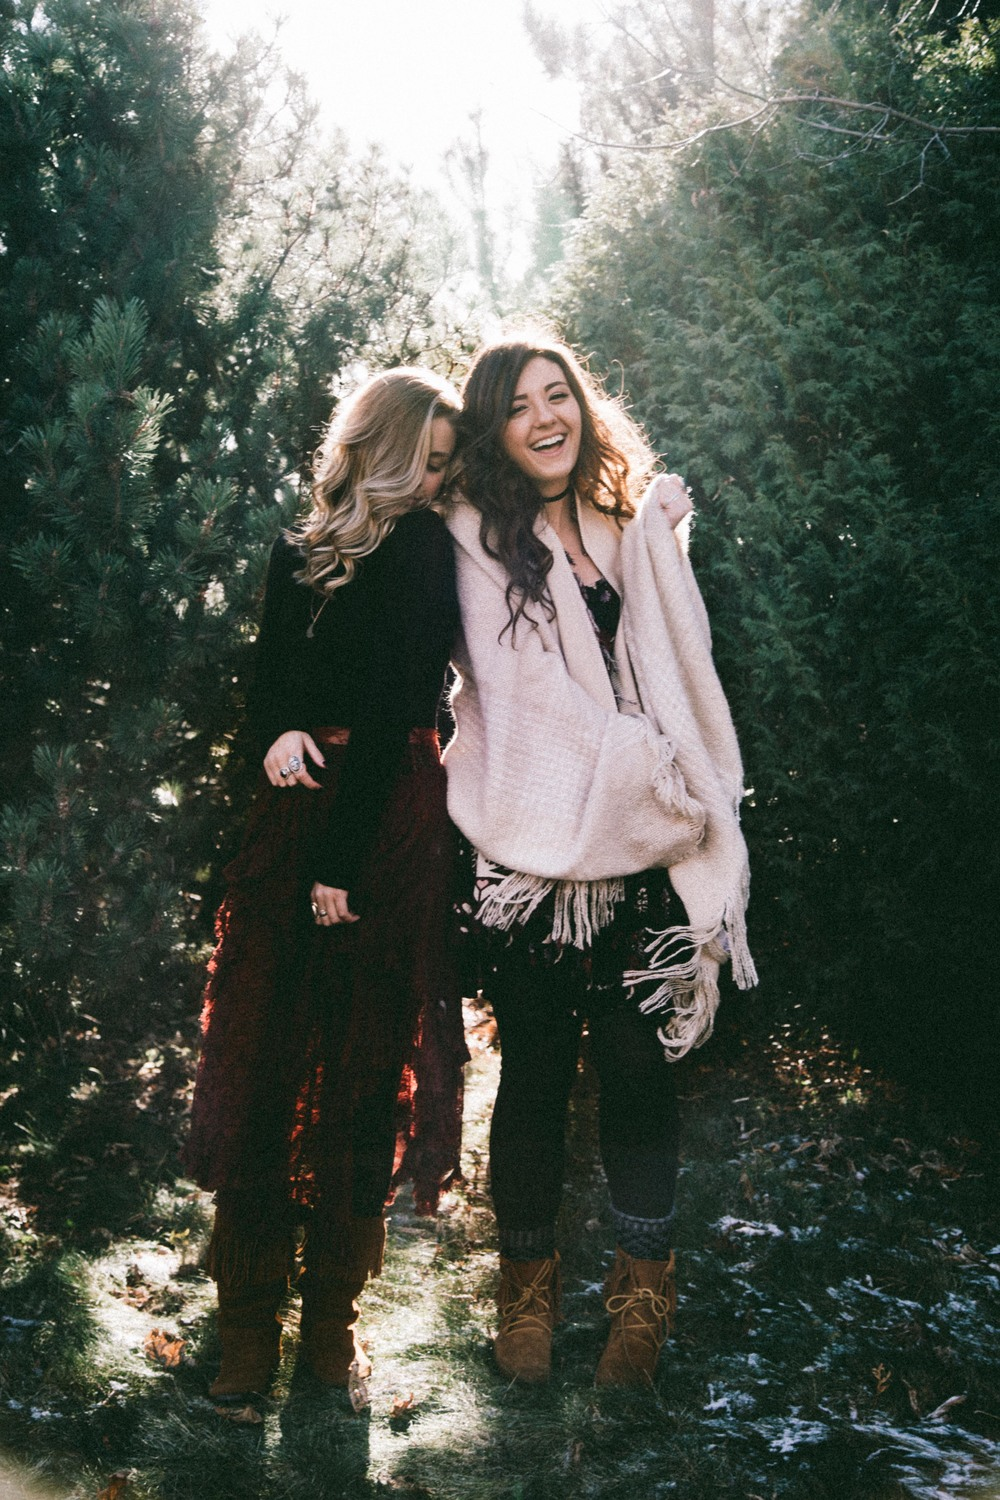 Courtney: Free People Dress | Free People Leggings |  Minnetonka Moccasin Boots  Allegra: Free People Dress | Forever21 Scarf | PacSun Leggings | Minnetonka Moccasin Boots